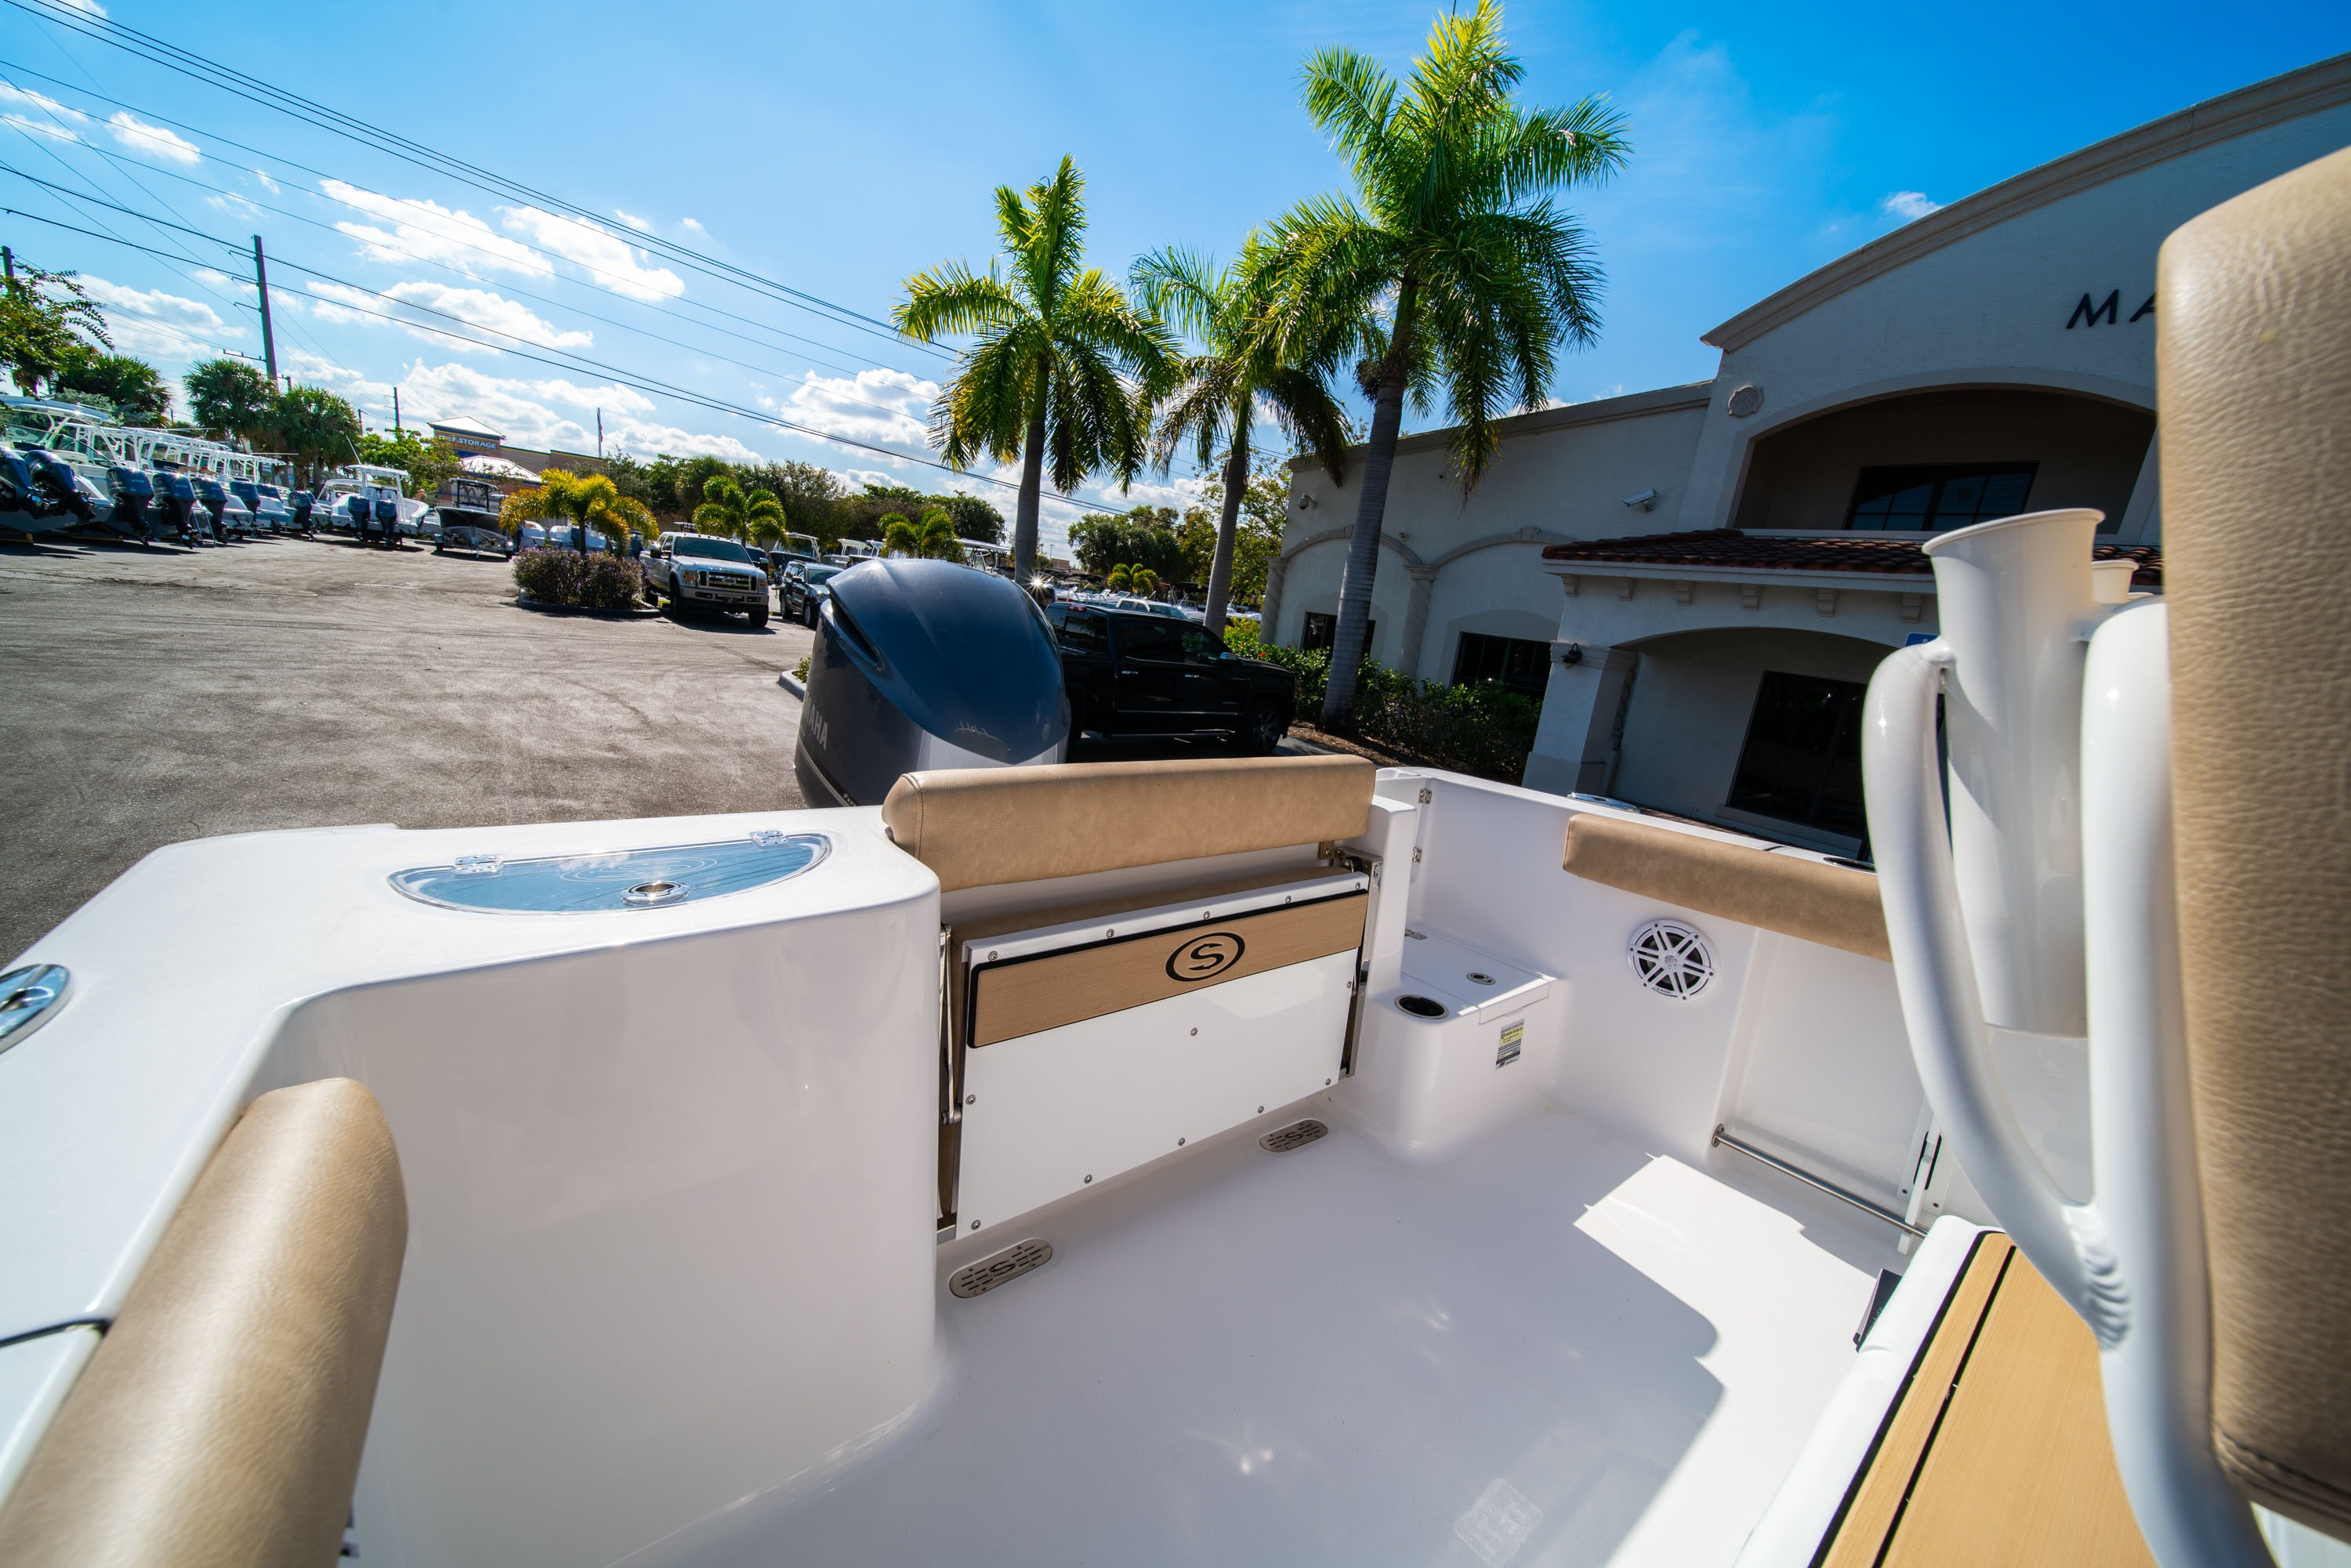 Thumbnail 9 for New 2020 Sportsman Open 232 Center Console boat for sale in West Palm Beach, FL